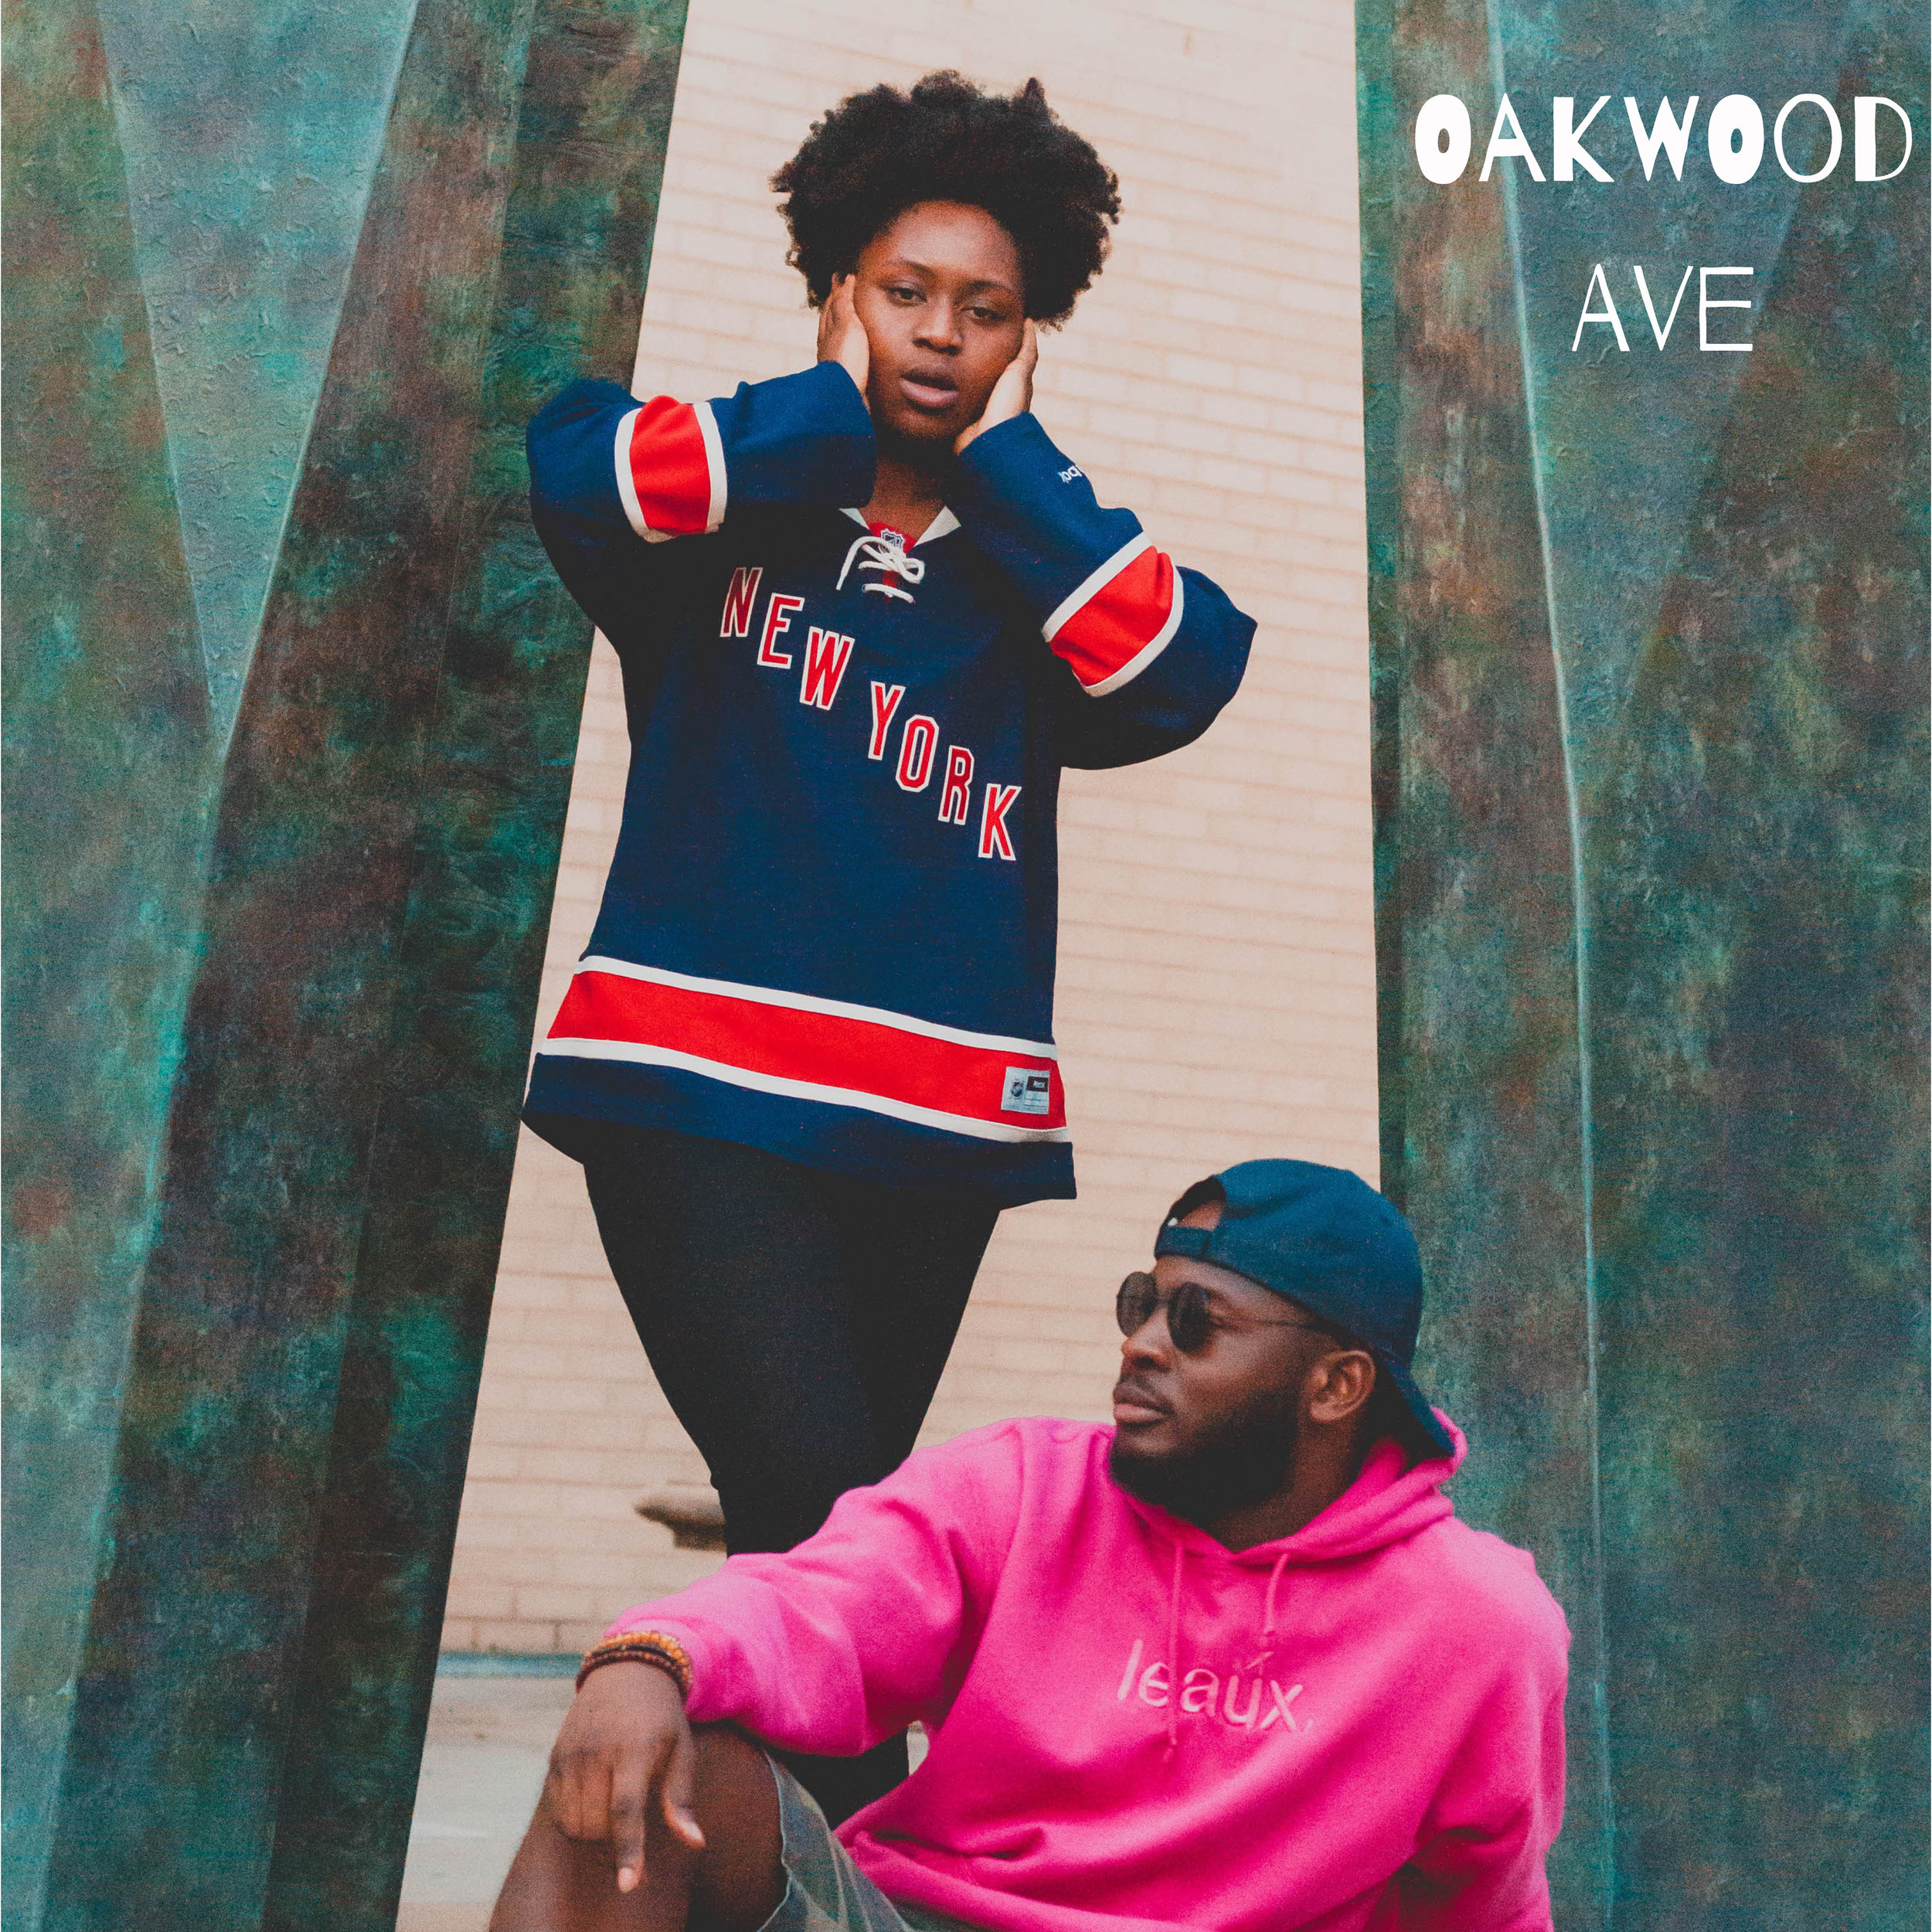 Oakwood Ave (EP) - Out Now! -